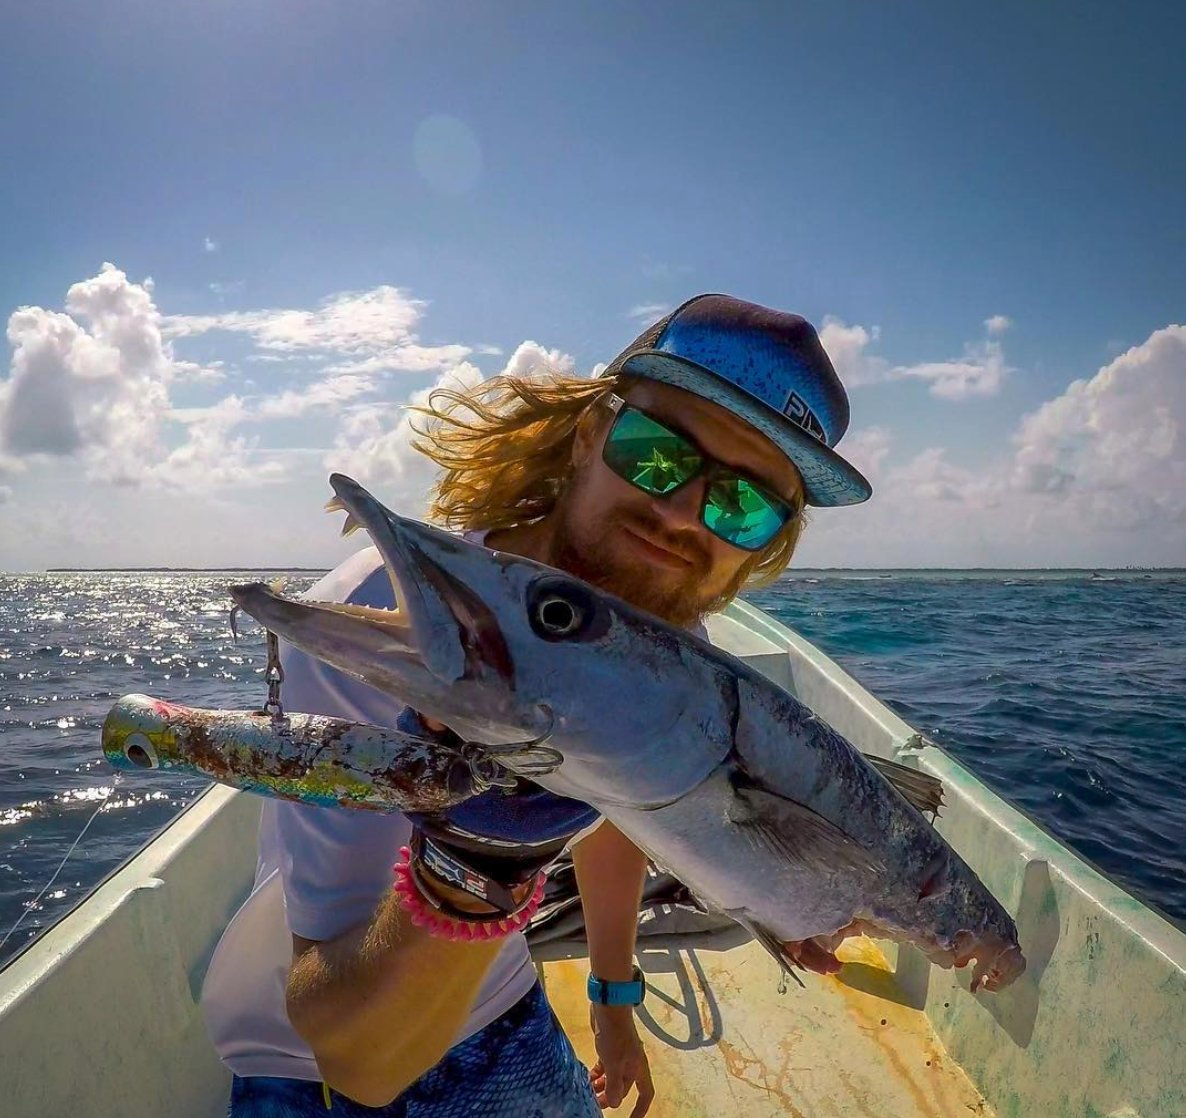 5ed63ef2a6 ... our  SeeWhatsOutThere gallery and join the  CostaCrew for a chance to   win a  free pair of shades at http   bit.ly 2r49Xks  .pic.twitter.com rPKfuBmA4G